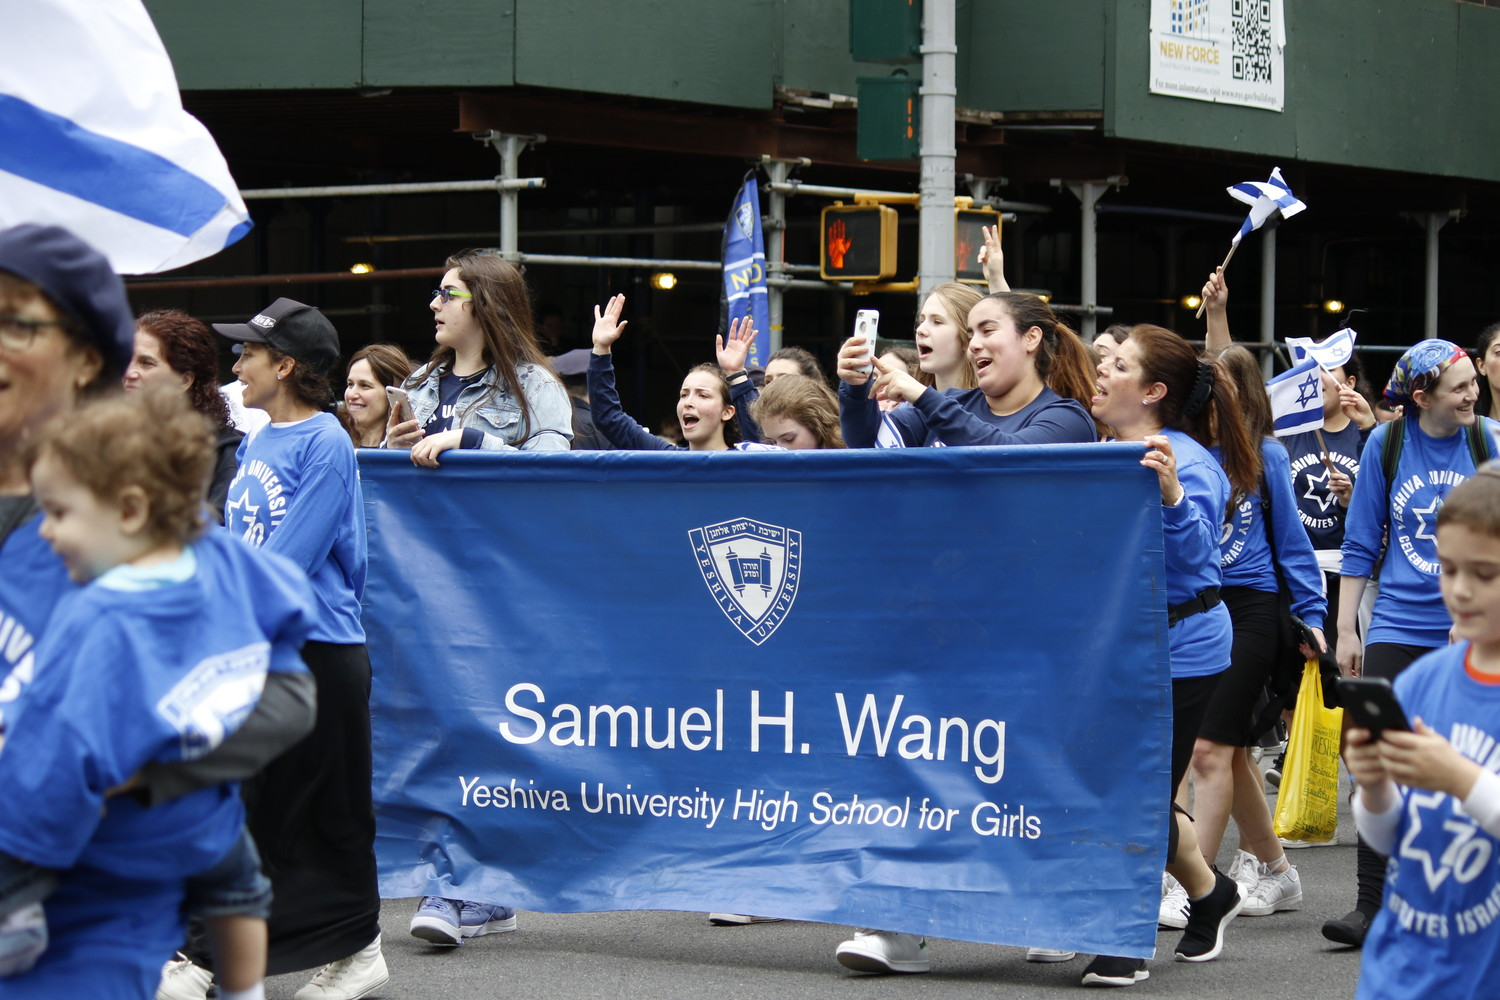 From the Samuel H. Wang Yeshiva University High School for Girls (Central).